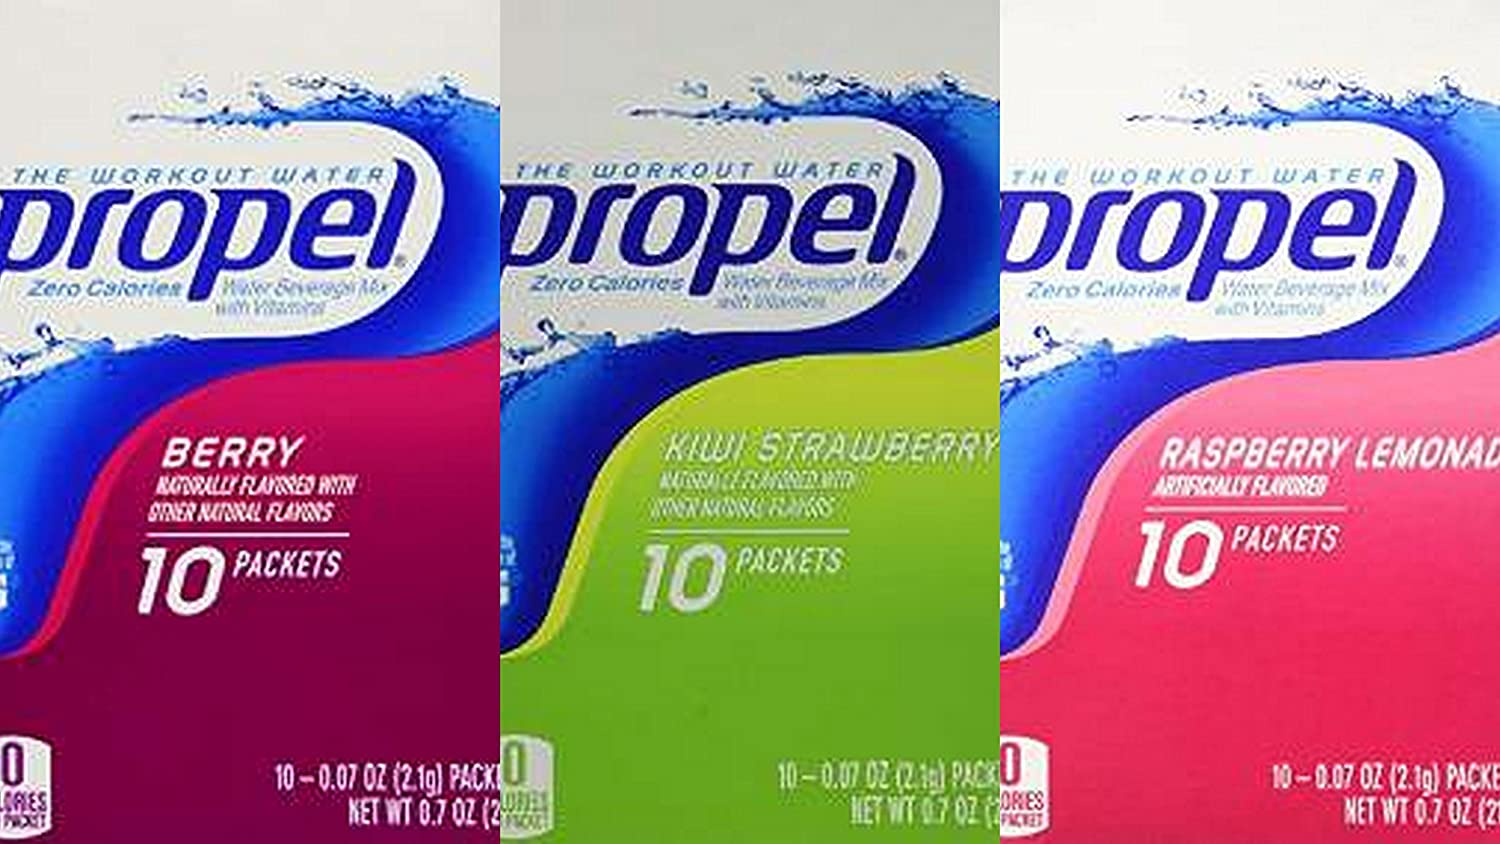 Propel Zero Powder Packets Variety Bundle - 60 Packets - 6 Boxes Total (2 Boxes Each of Raspberry Lemonade, Kiwi Strawberry, and Berry) …